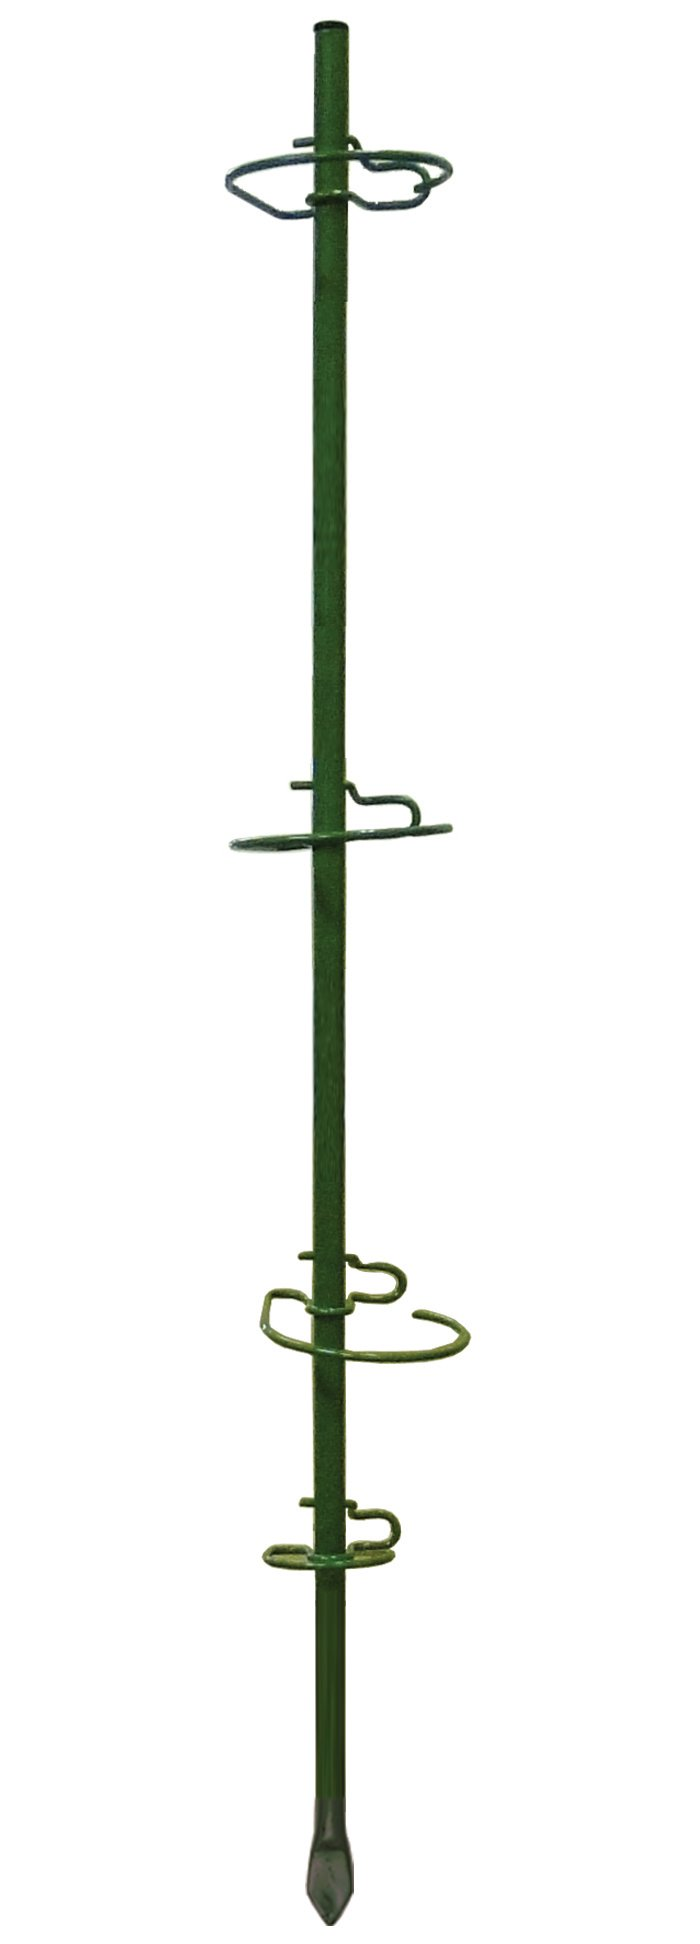 MultiStake Set - Tomato Stake - Vine Plants - Vegetable holder - Vertical Gardening - Tomato Planting - Garden Tool - Gardening Product - Ground Stake - Outdoor Goods - Lawn and Garden Supplies - Multi Stake by MultiStake by Natures Distributing